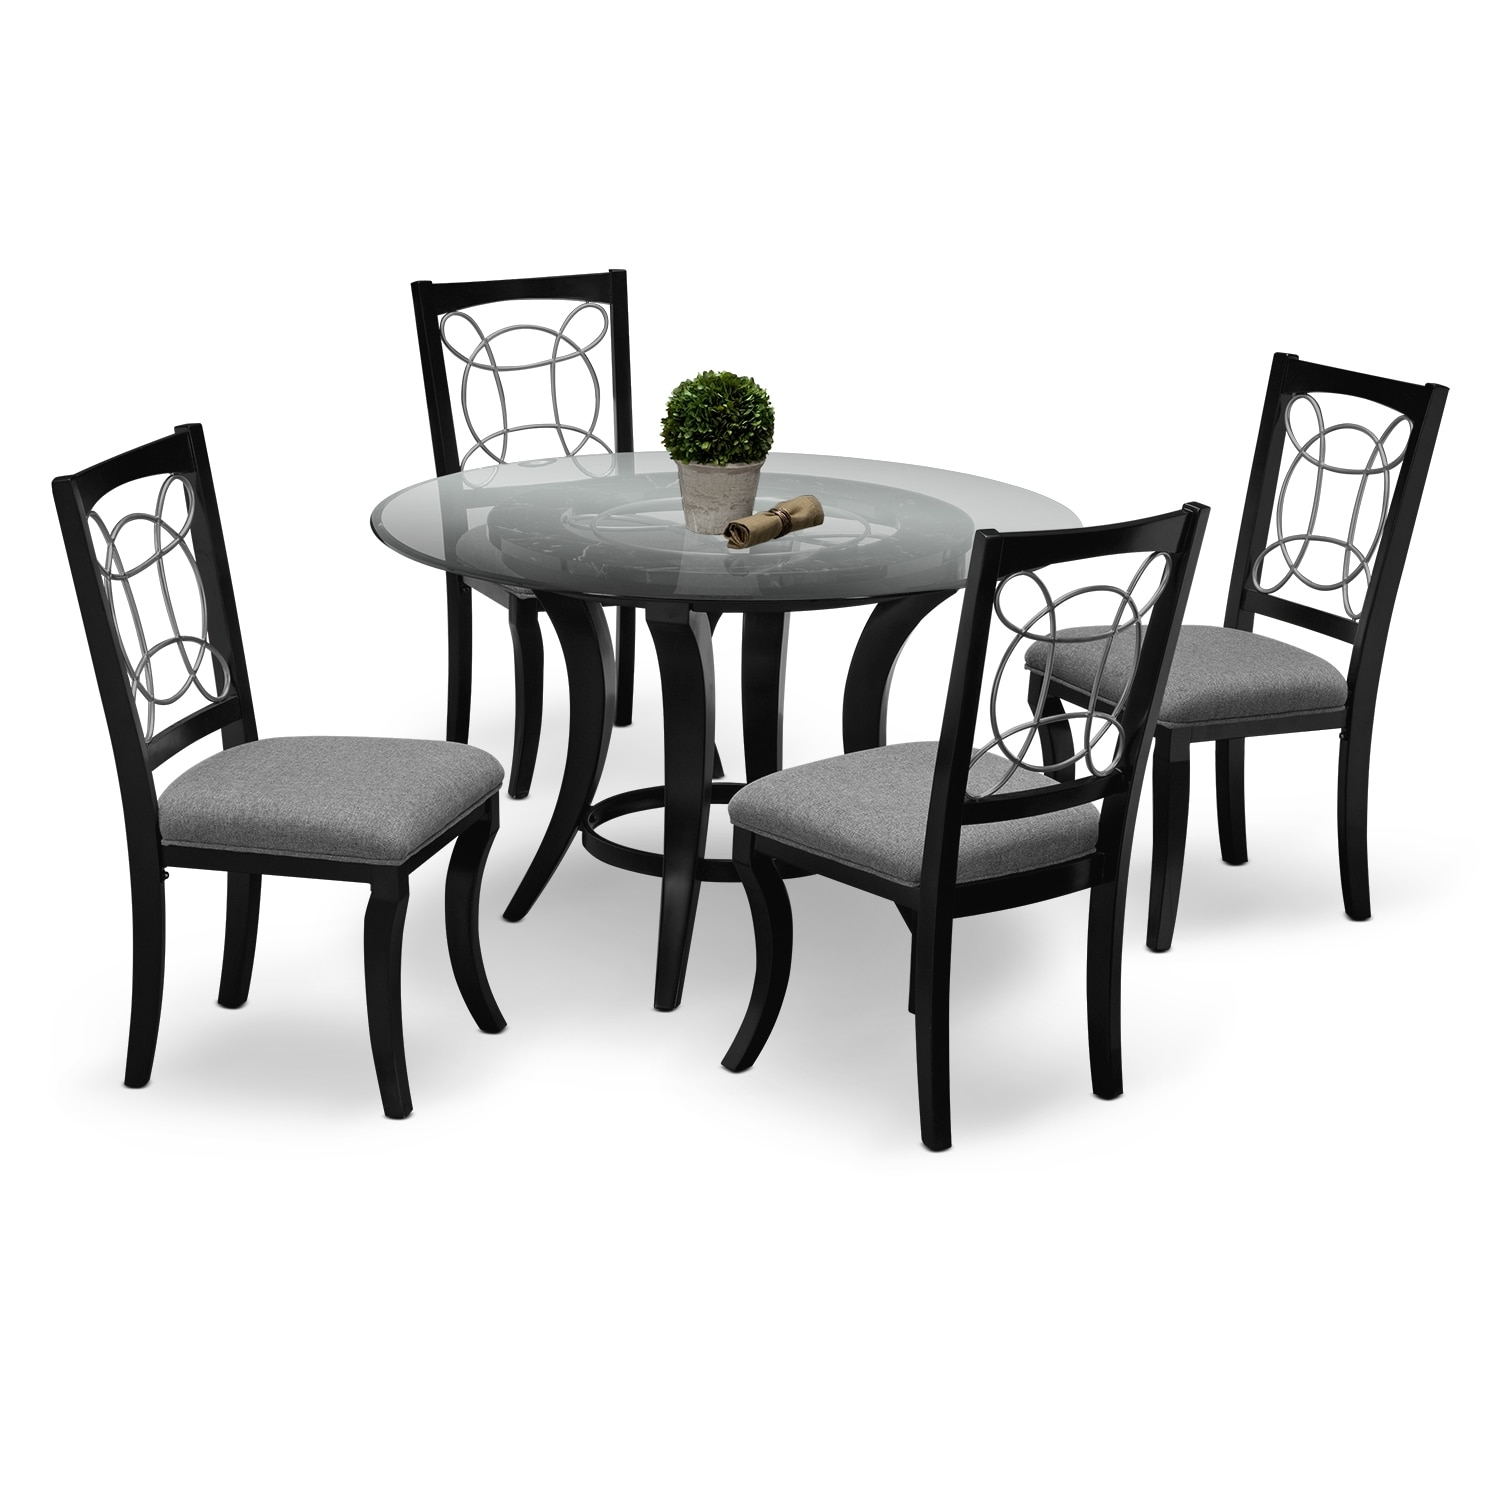 Pandora Table and 4 Chairs - Black